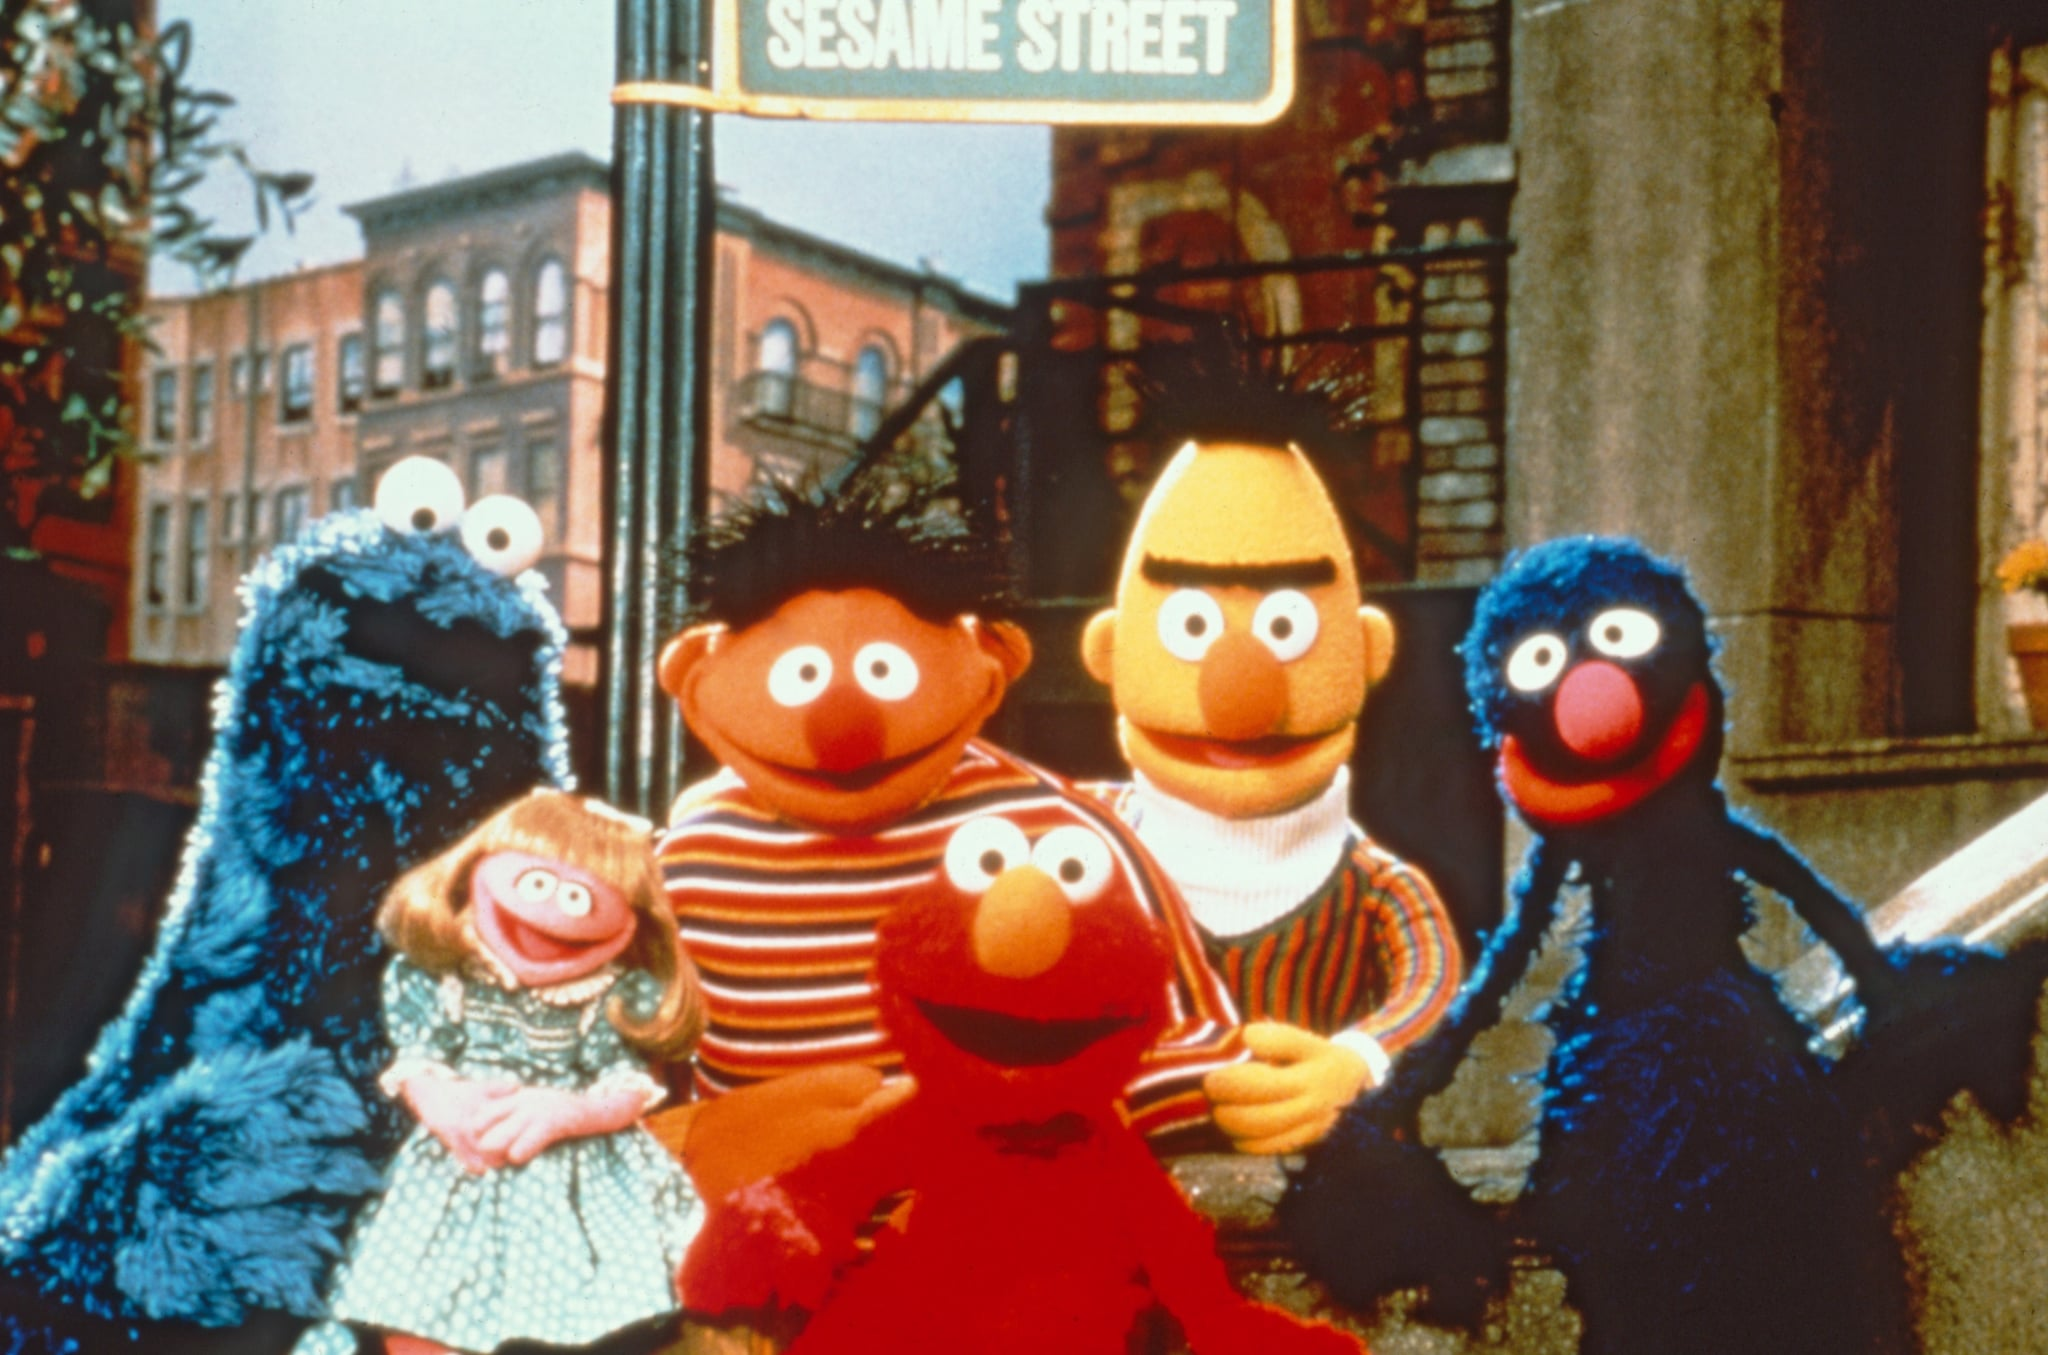 SESAME STREET, from left: Cookie Monster, Prairie Dawn, Ernie, Elmo, Bert, Grover, (premiered July 21, 1969). photo: CTW/Sesame Workshop / Courtesy Everett Collection